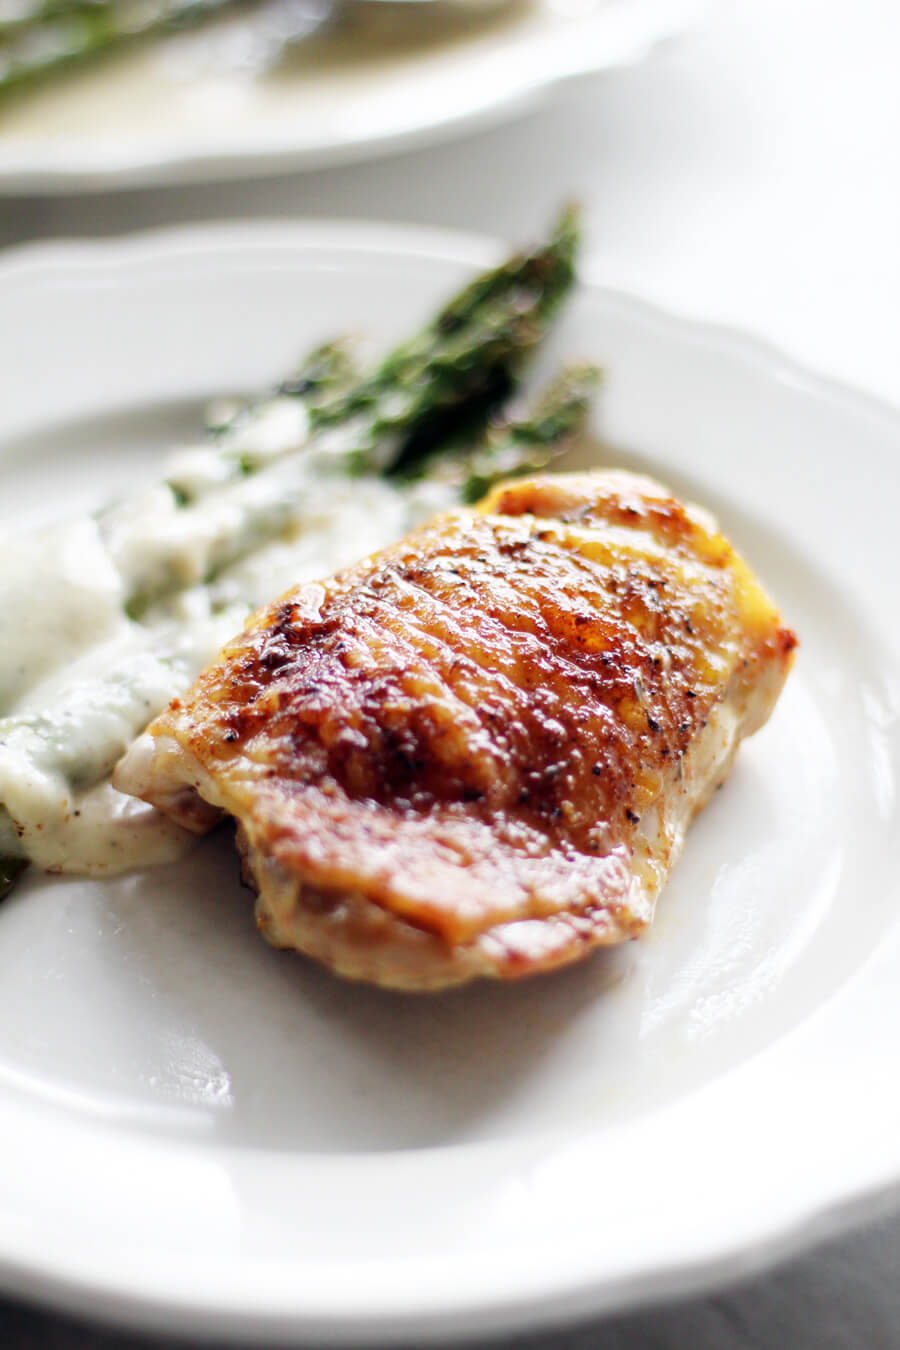 A golden baked chicken thigh on a white plate next to asparagus